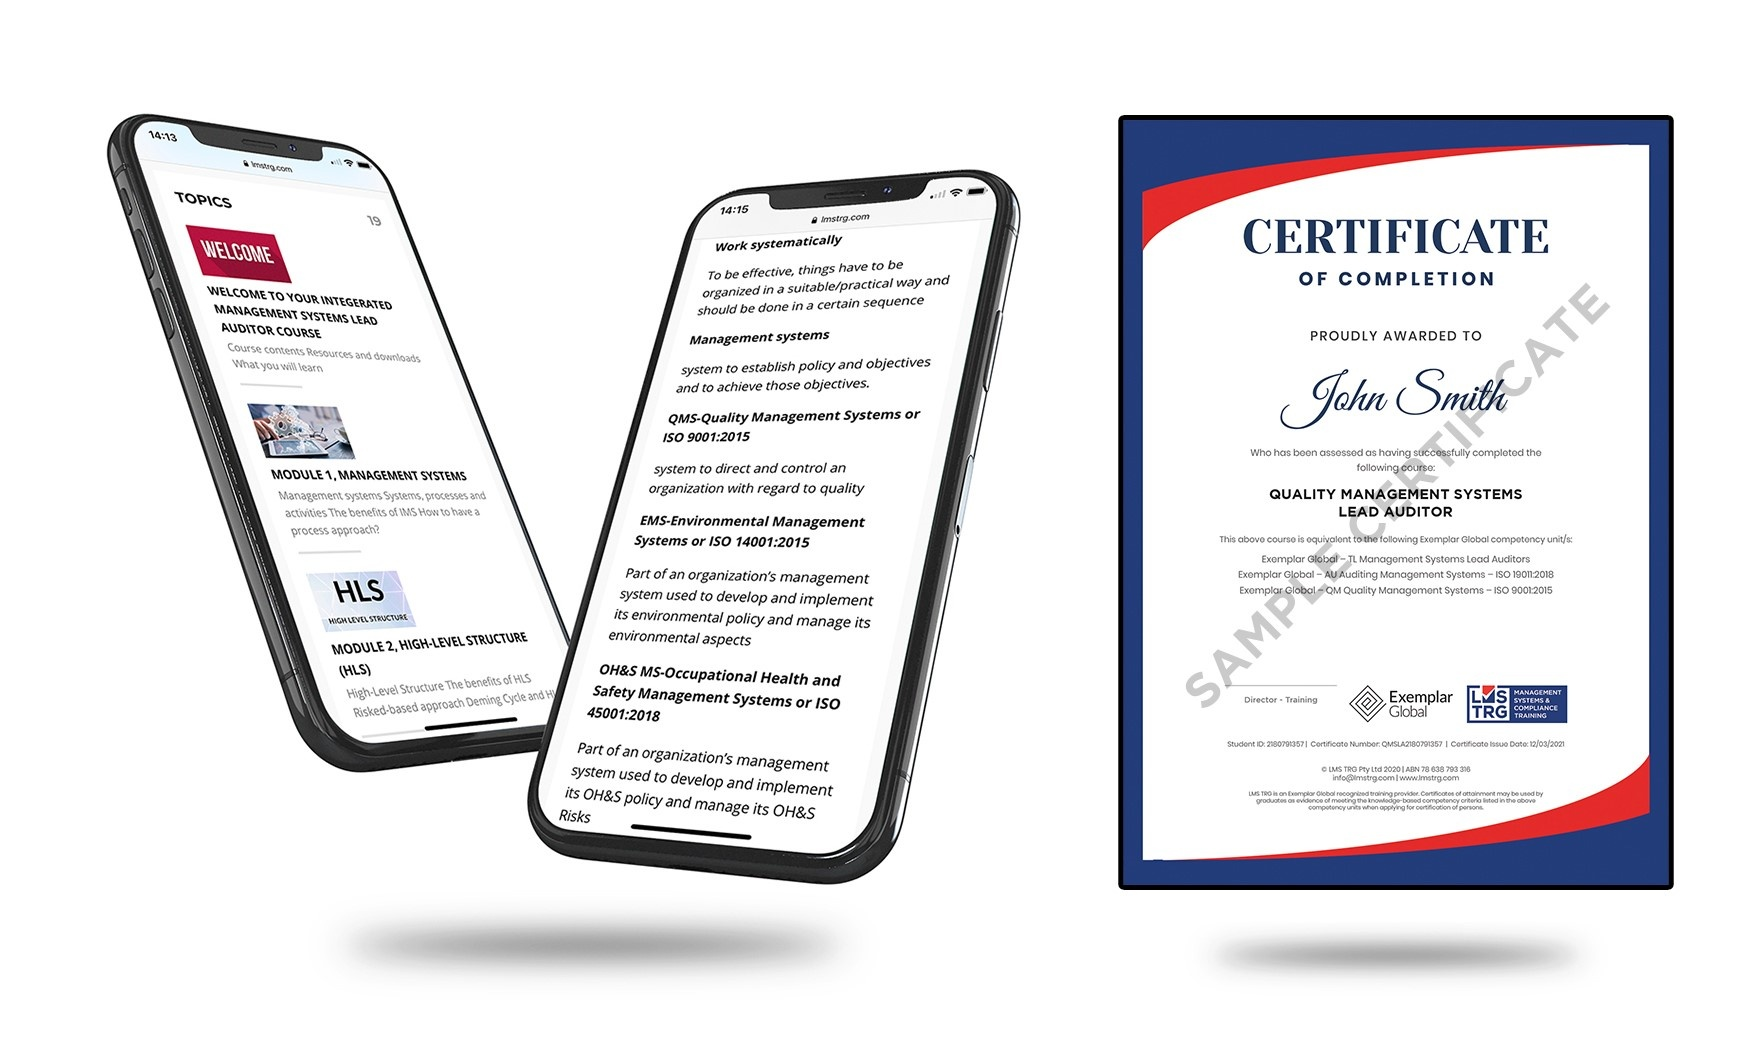 ISO 9001 Quality Management Systems (QMS) Lead Auditor ISO Certificate